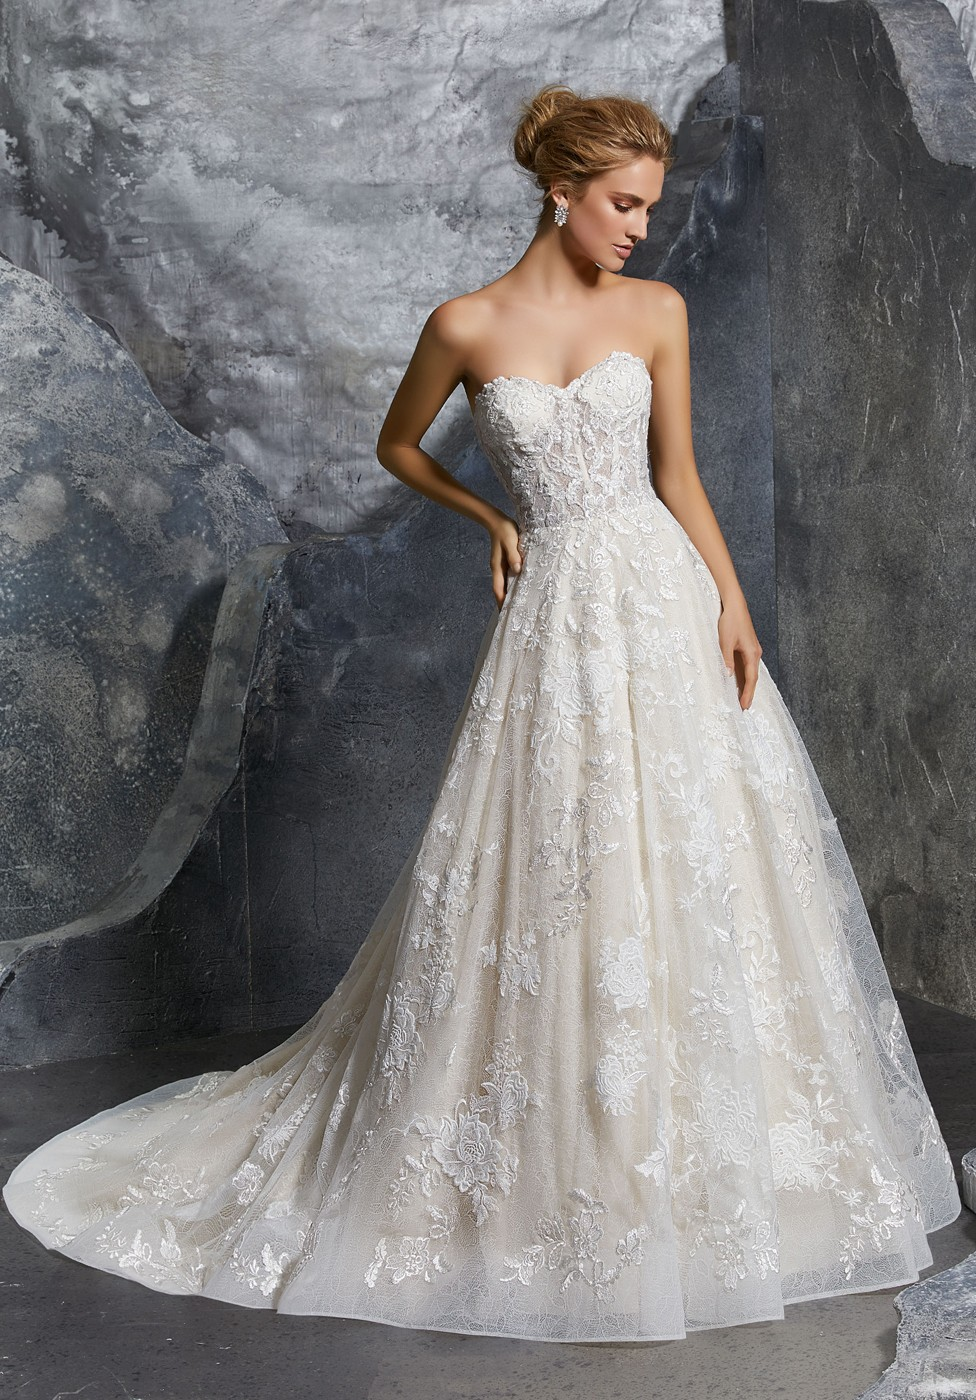 Mori Lee Katerina Style 8220 Dress - MadameBridal.com